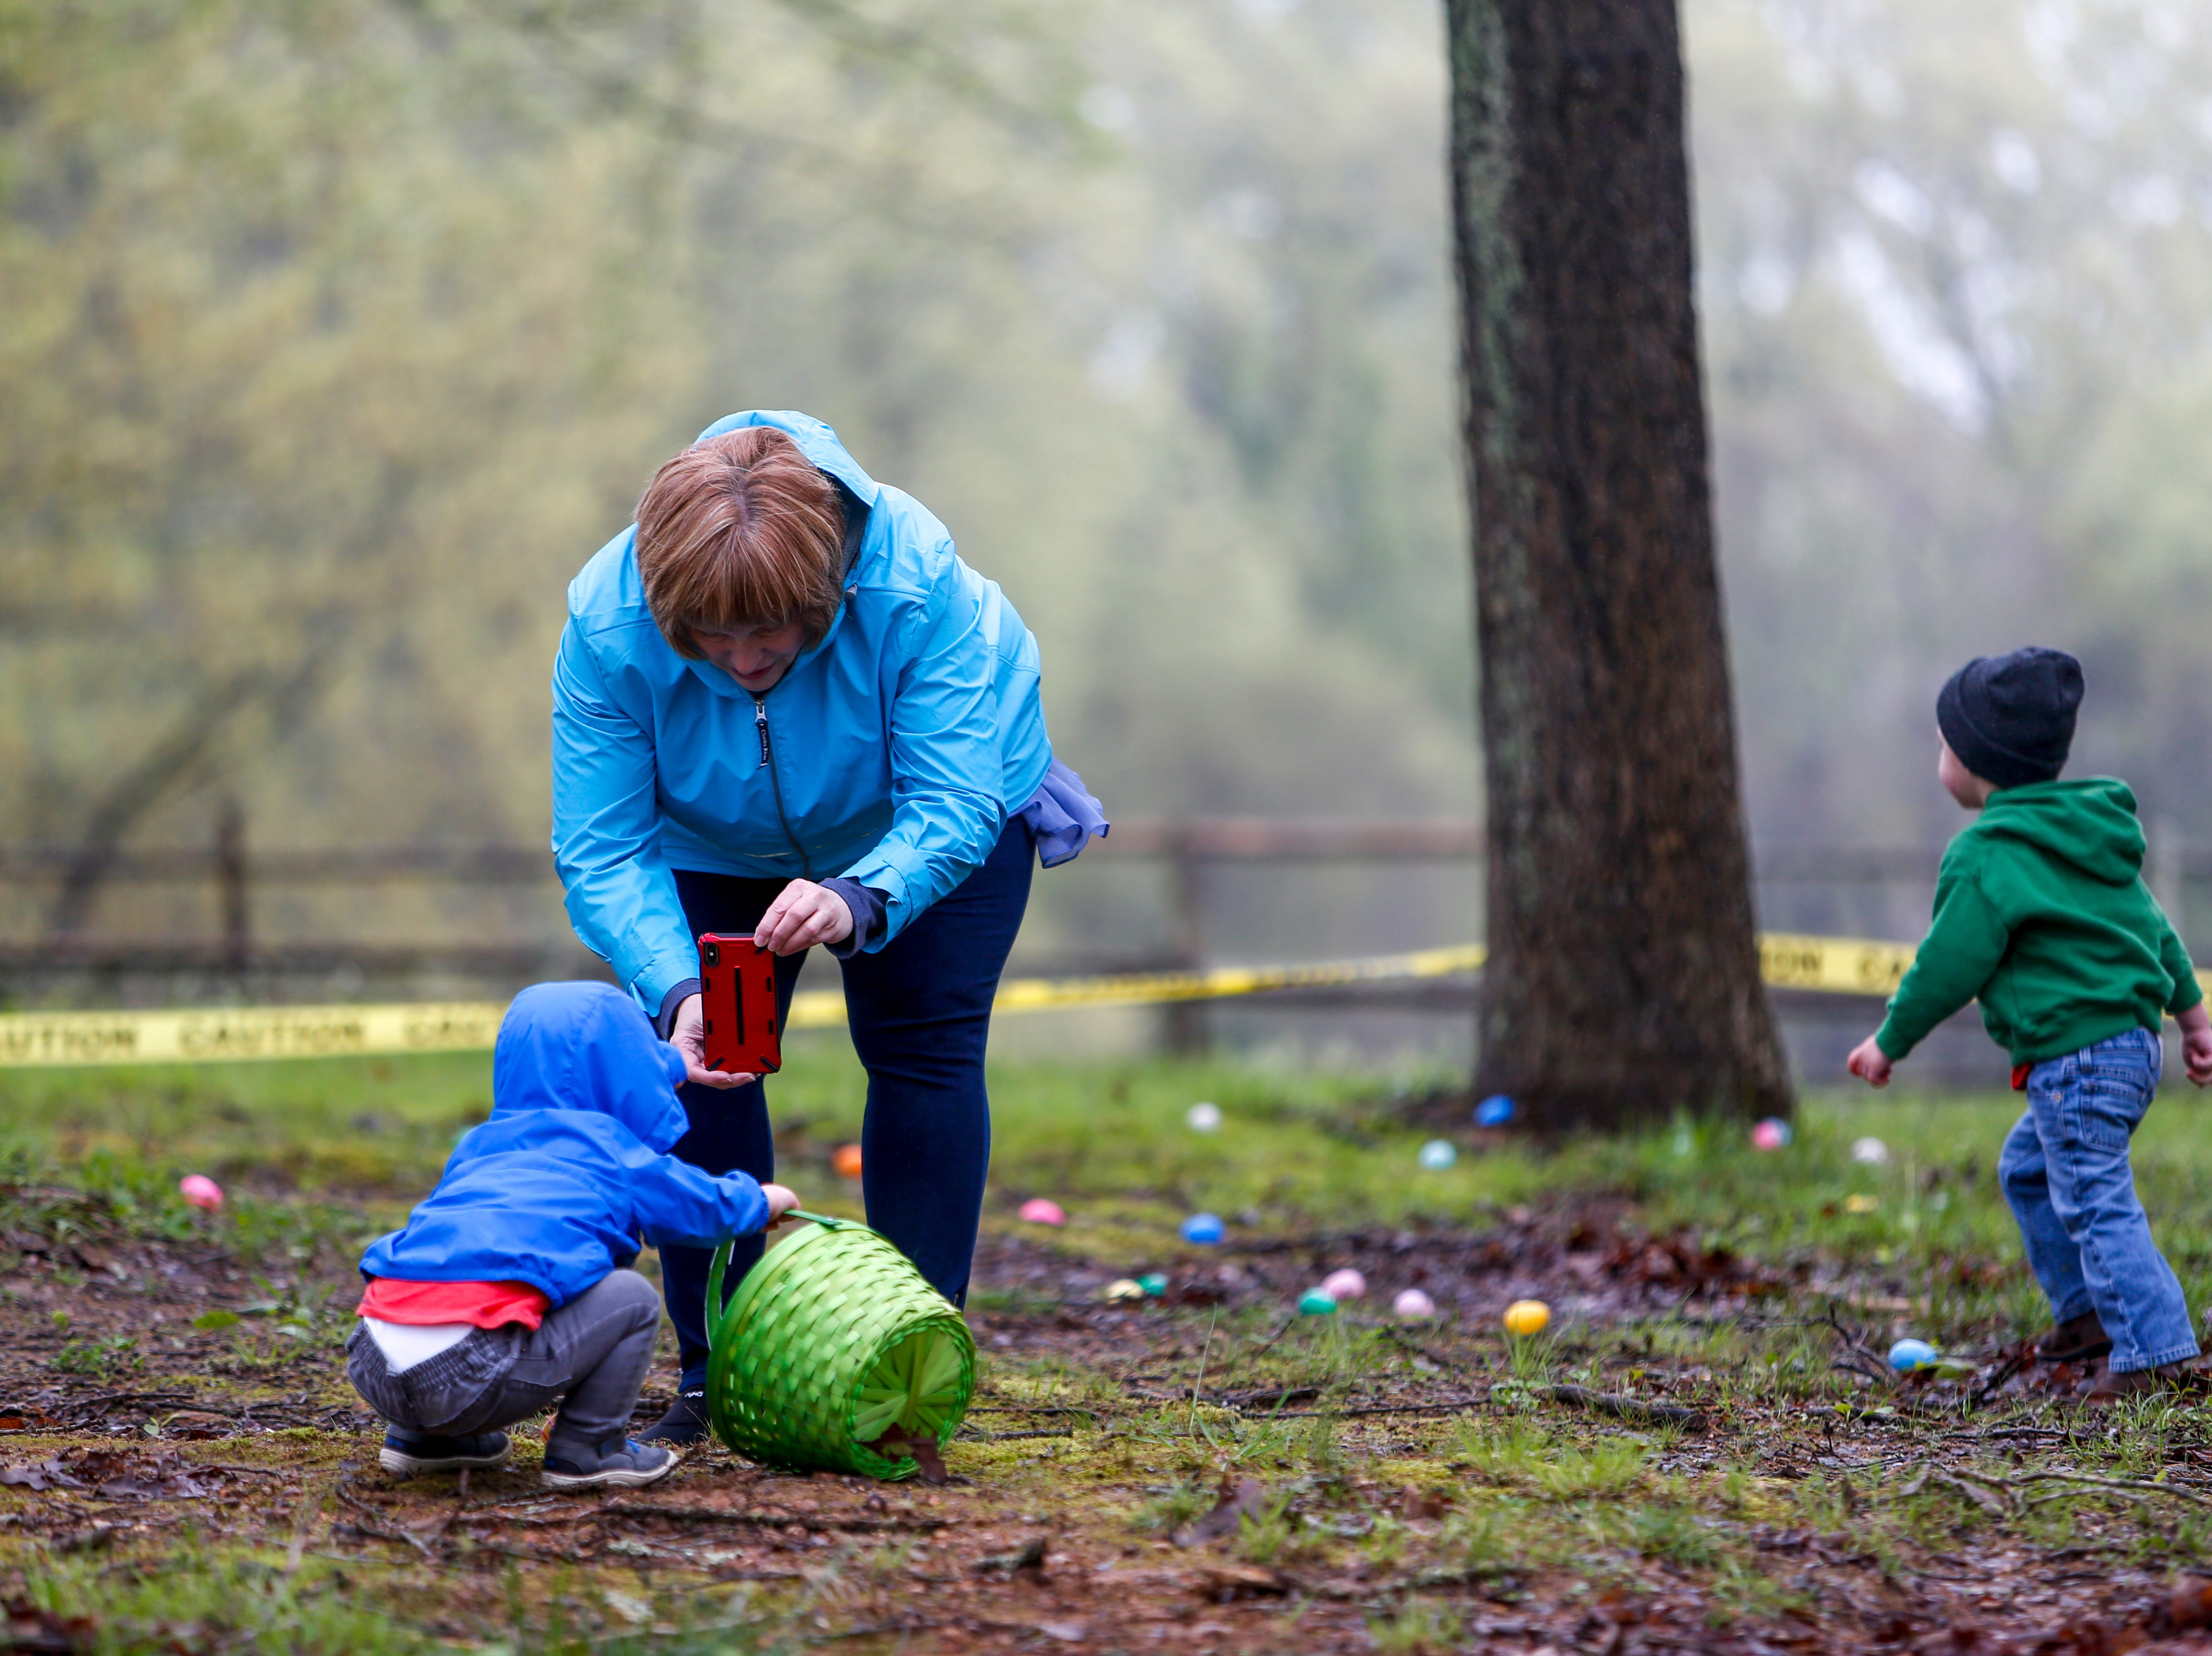 Egg hunters run around in search of eggs and family snaps photos of them and their loot at the annual Easter egg hunts at Historic Collinsville in Clarksville, Tenn., on Saturday, April 20, 2019.